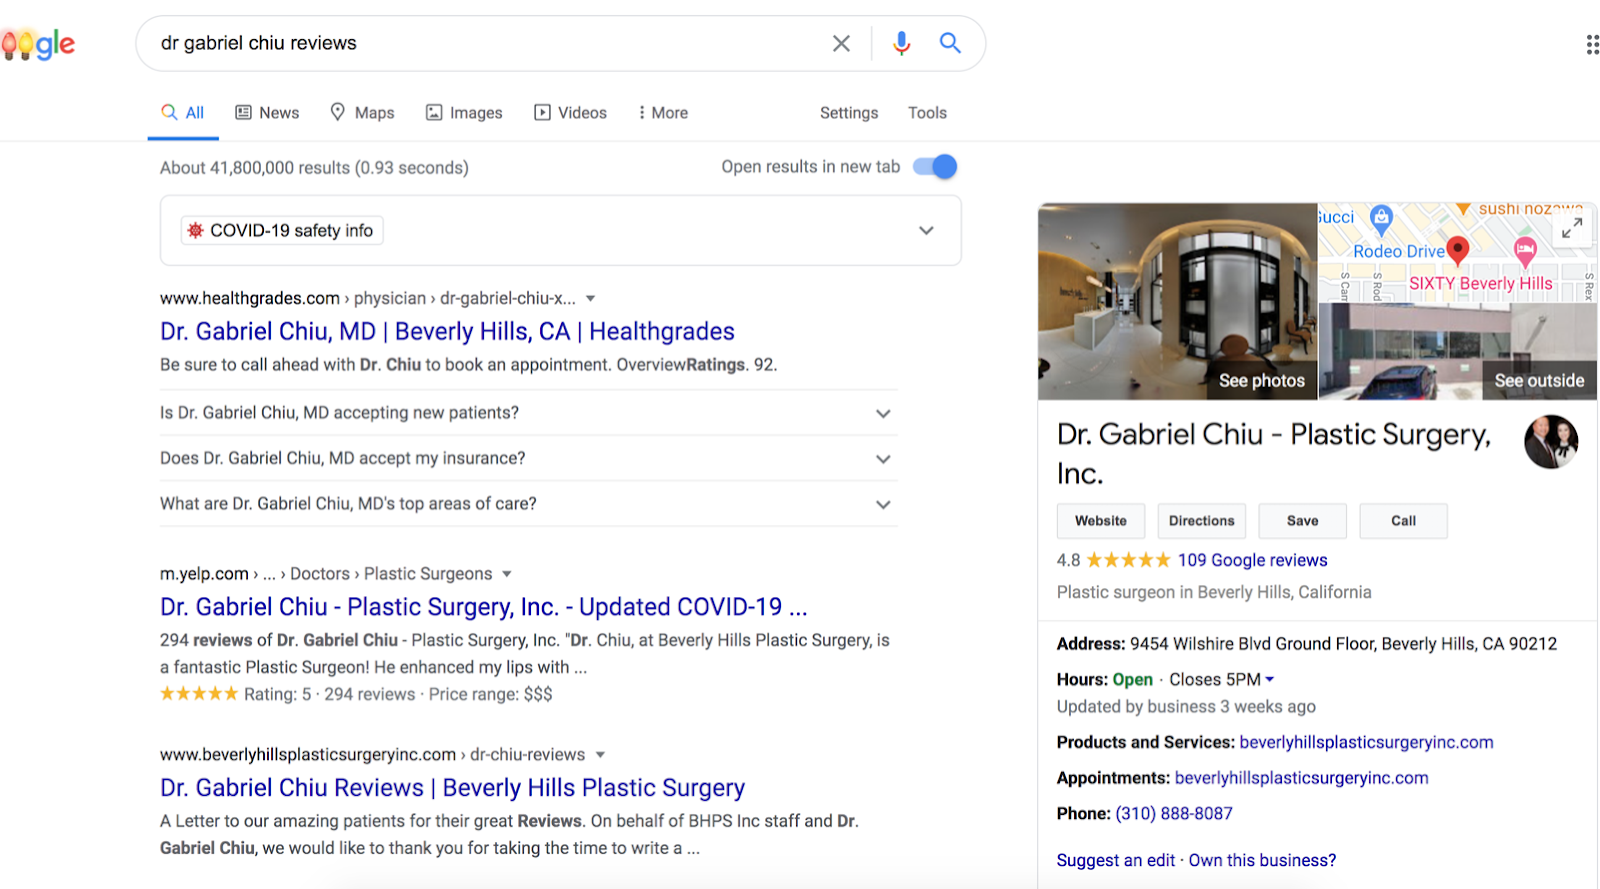 Google Search Engine Results Page (SERP) seeking a specific doctor's reviews with Google My Business Listing to the side.